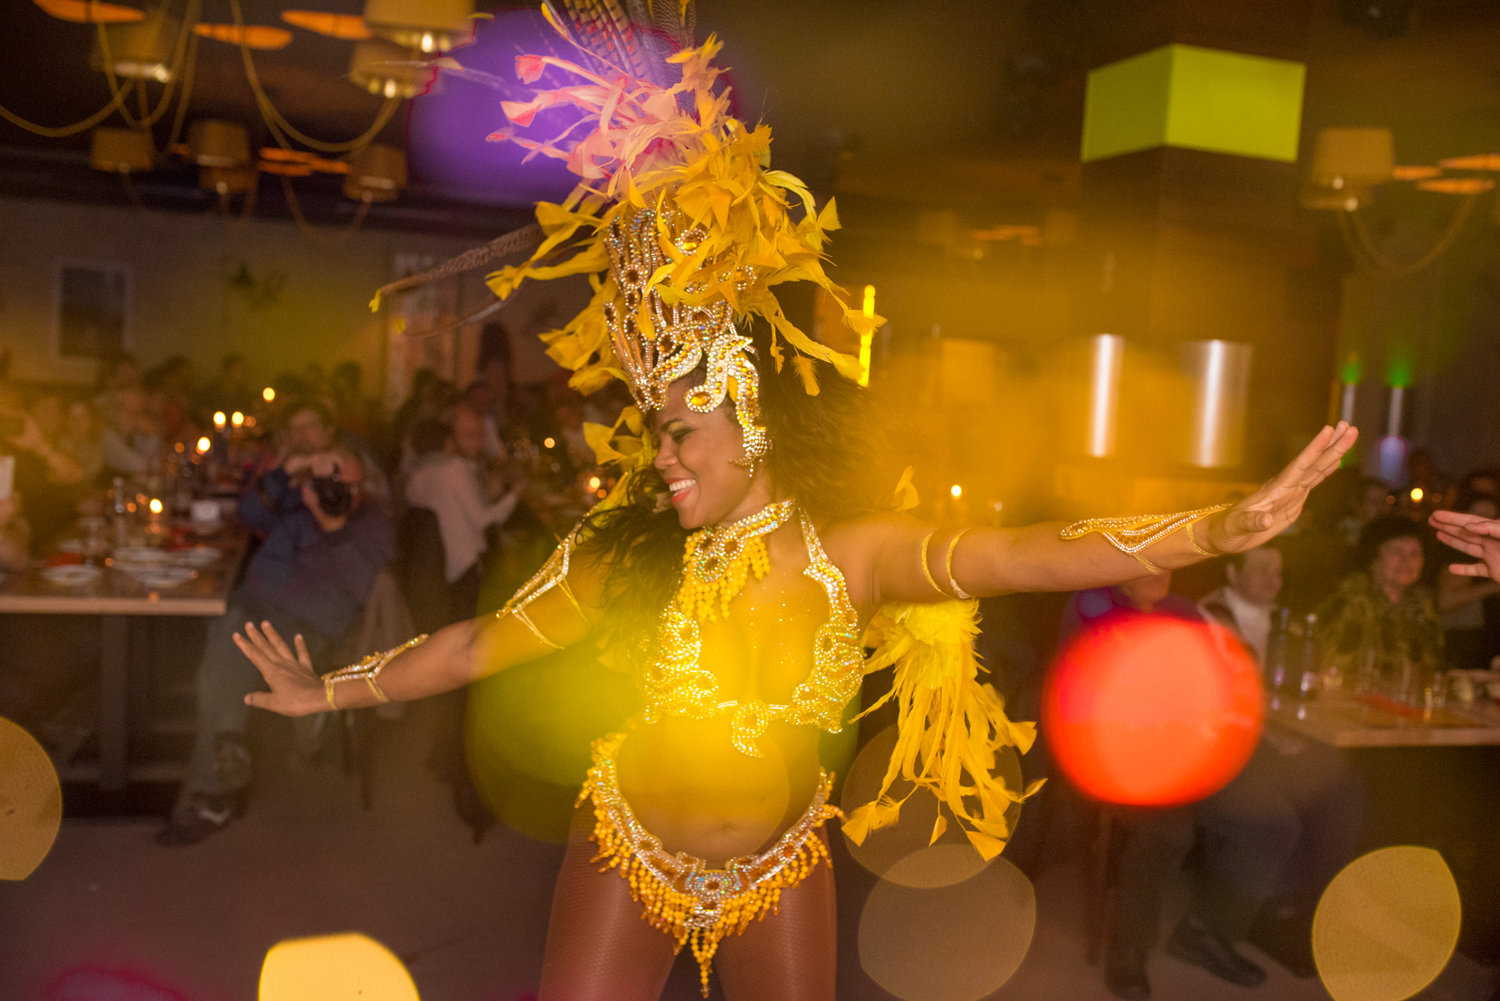 Show Time! - Every Friday and Saturday! Experience the Brazilian way of life with hot Brazilian beats, outstanding dancers, delicious cocktails and our unforgettable Samba Show.Show begins around 8pm